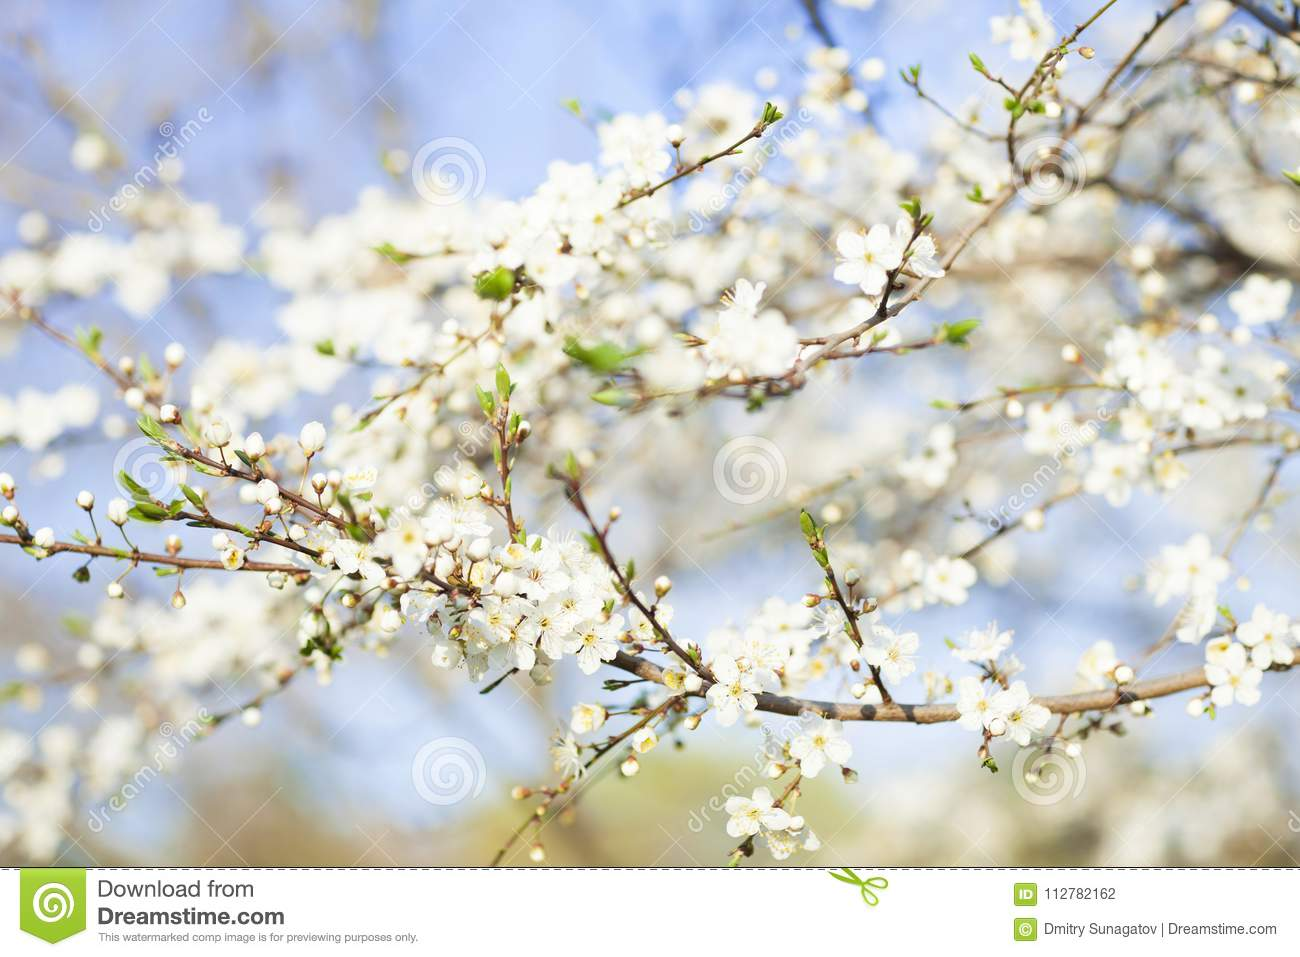 Spring beauty background blooming white flowers of trees stock blooming white flowers of trees mightylinksfo